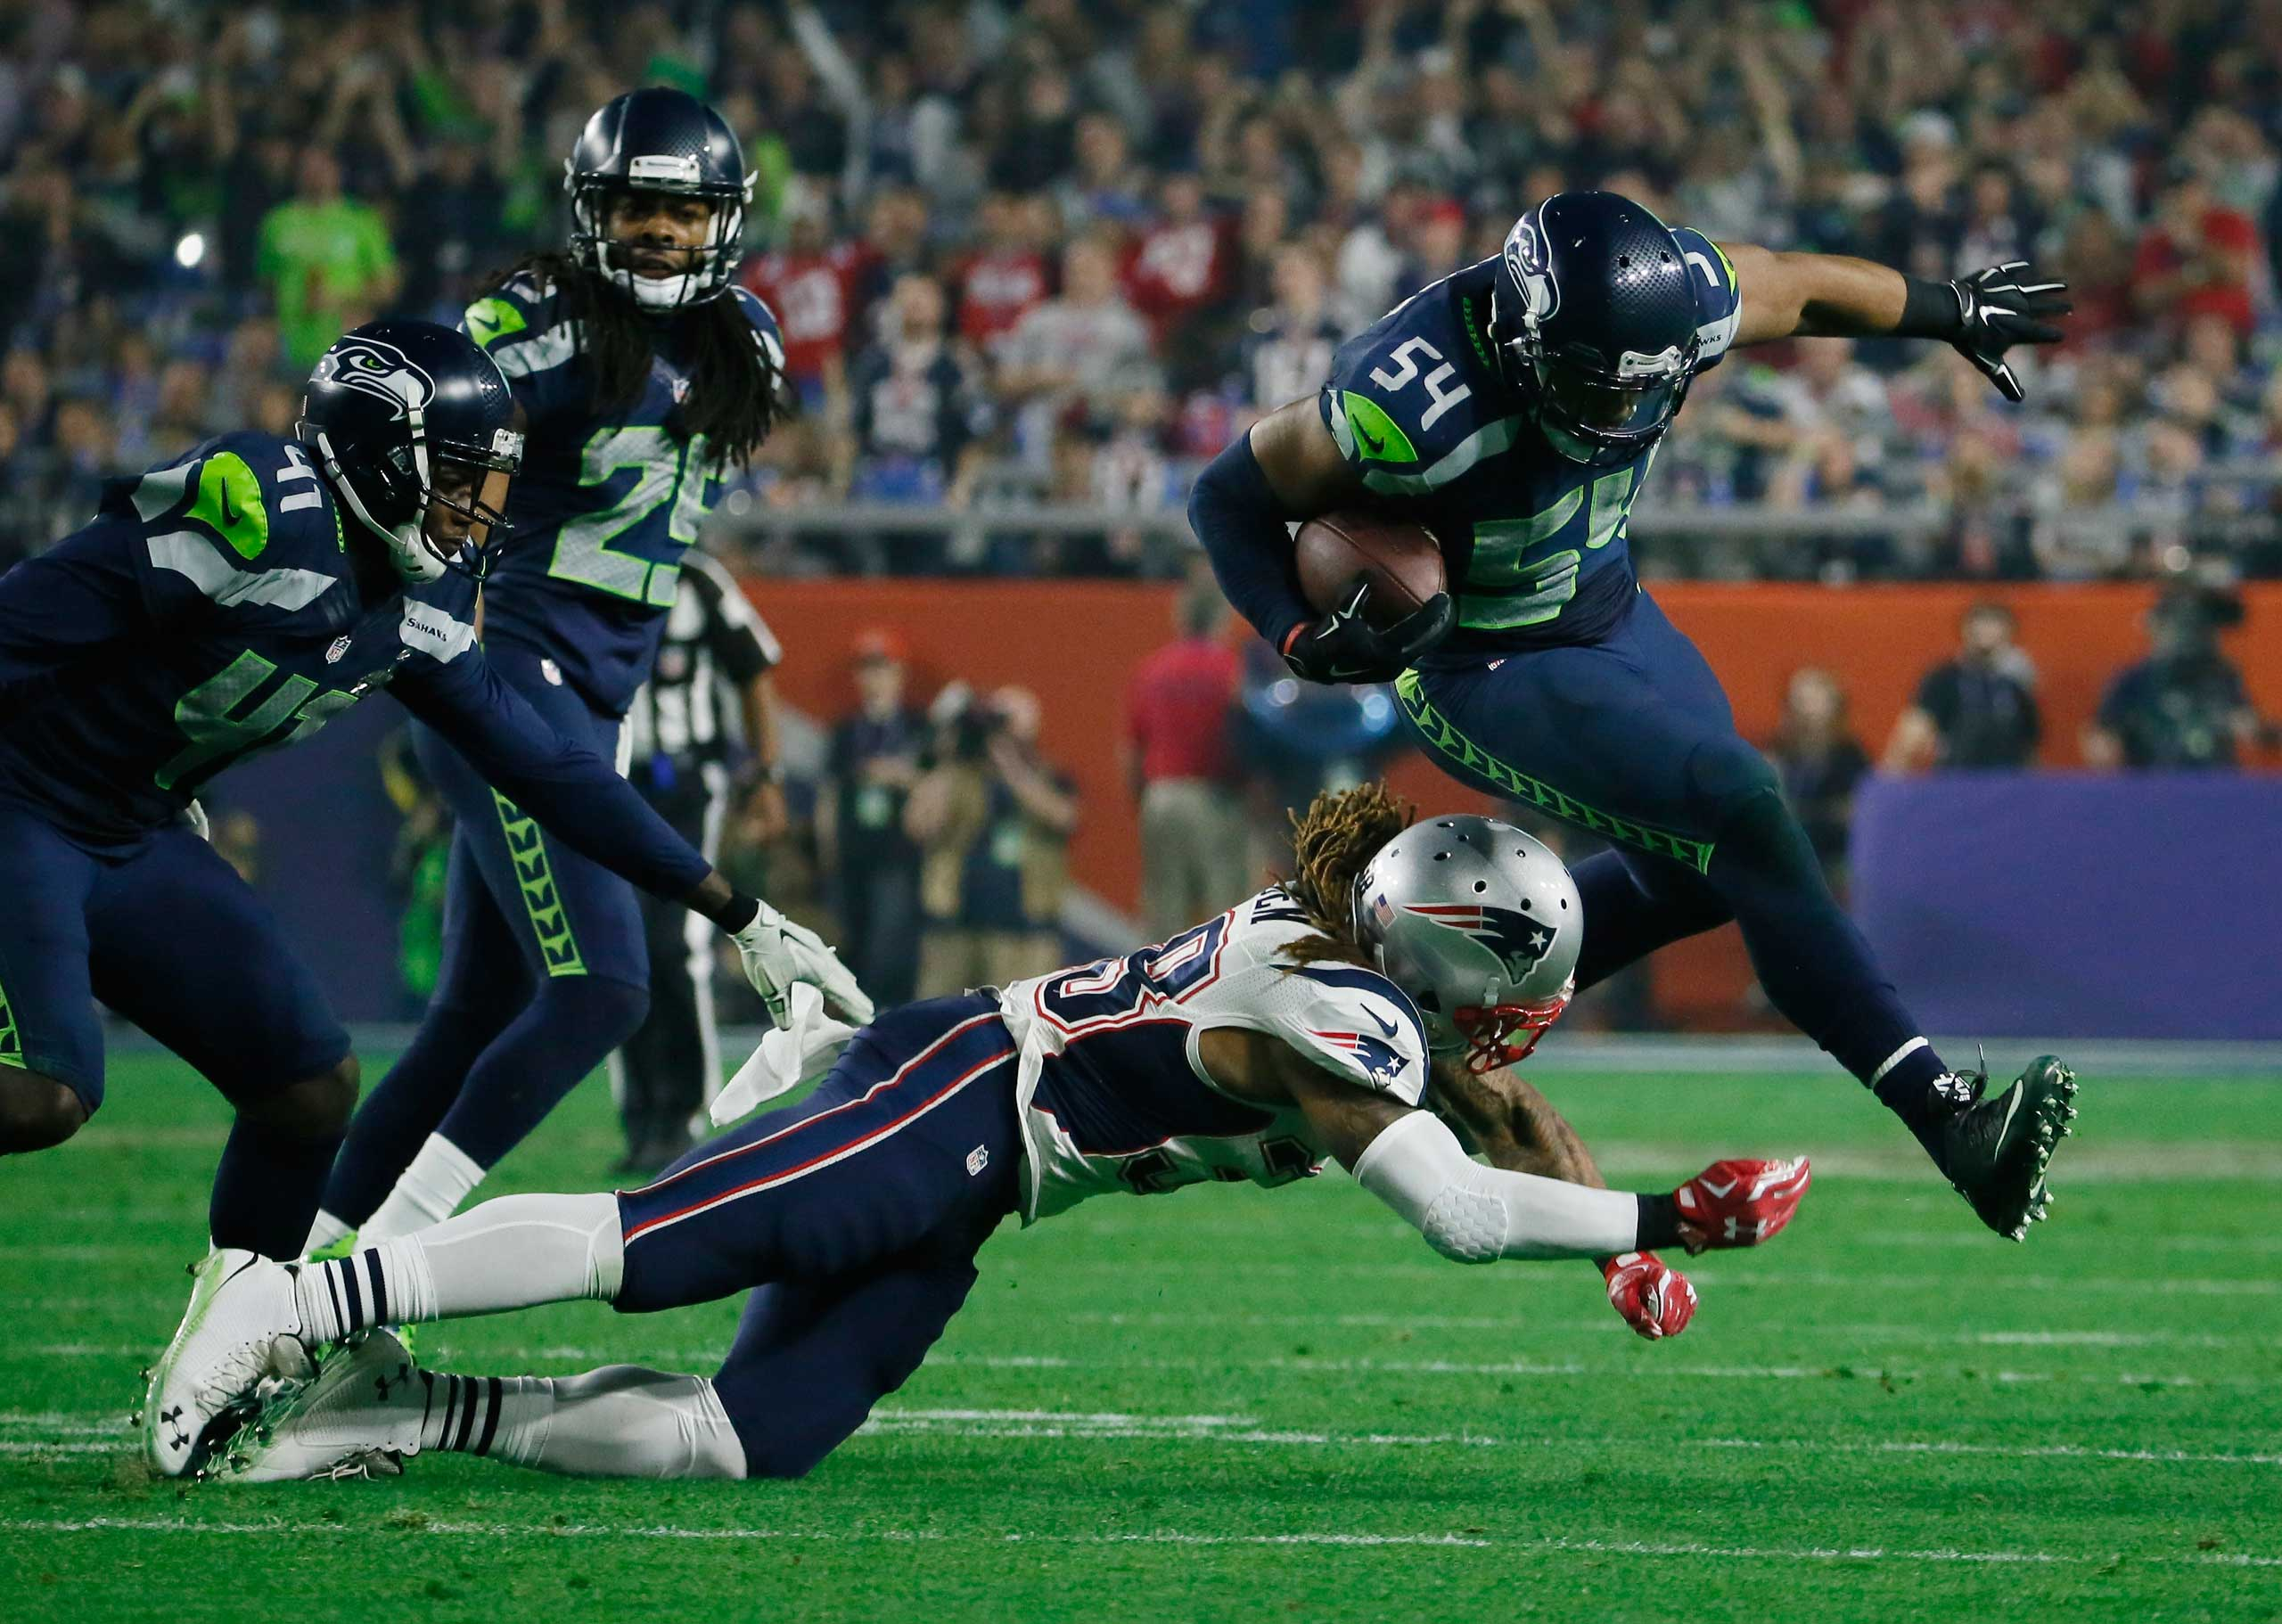 Seattle Seahawks middle linebacker Bobby Wagner (54) gets past New England Patriots running back Brandon Bolden (38) after intercepting a pass during the second half of NFL Super Bowl XLIX football game Sunday, Feb. 1, 2015, in Glendale, Ariz.